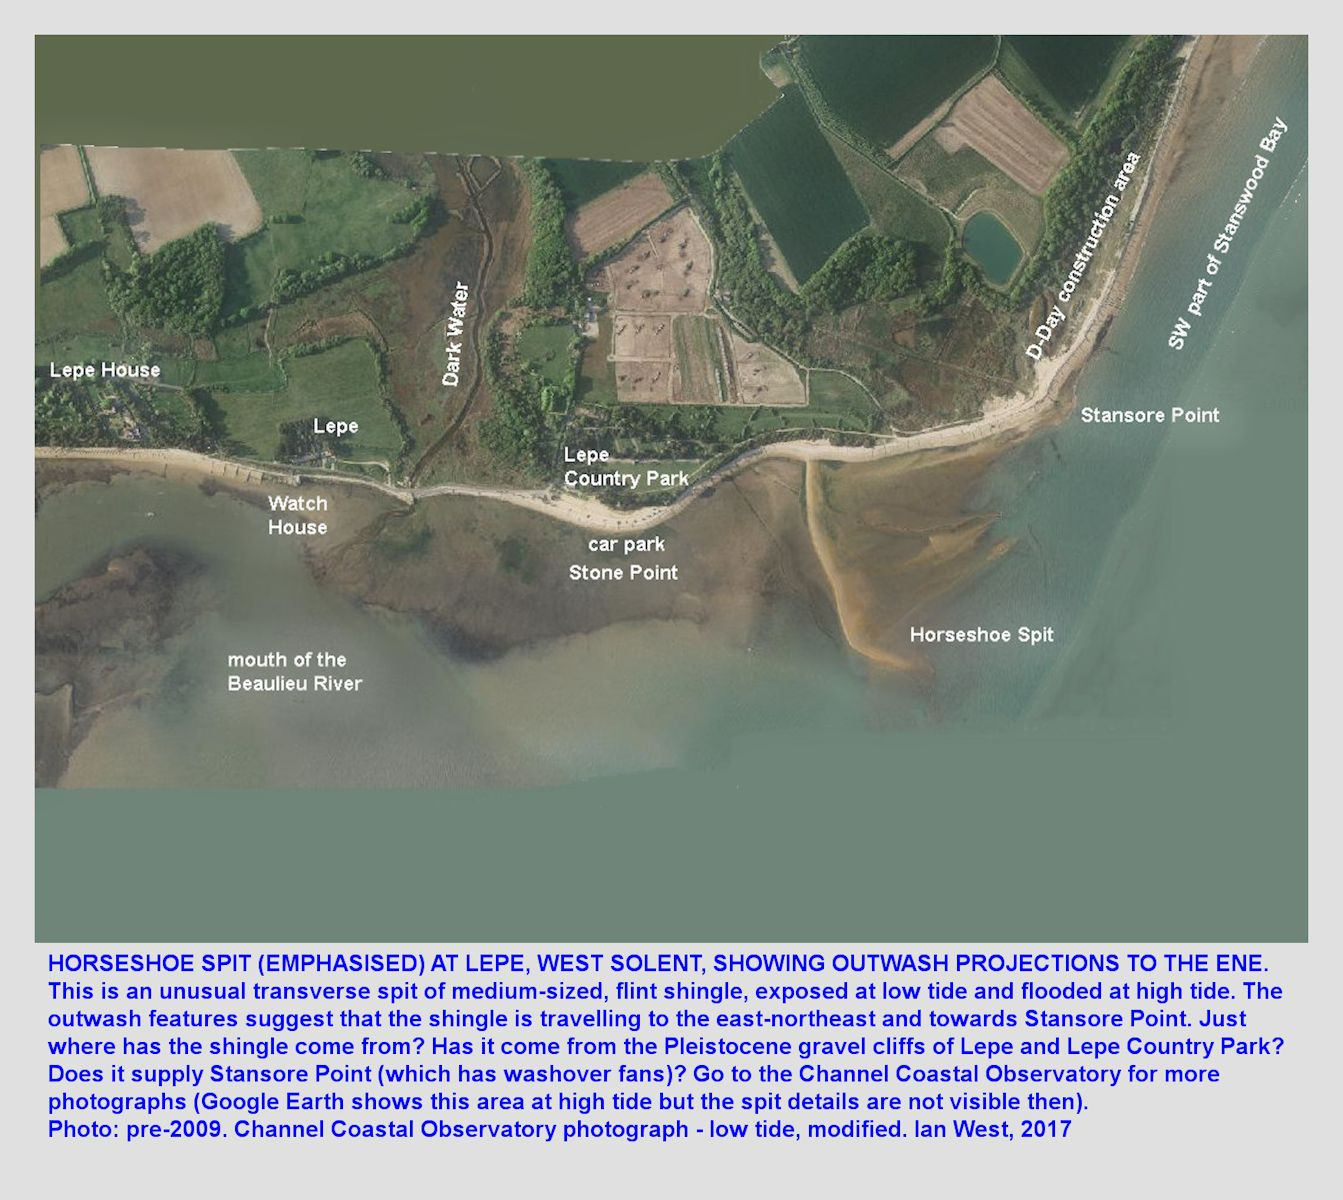 Horseshoe Spit, in the West Solent estuary near Lepe Beach, Hampshire, England, a transverse spit of reworked, Pleistocene, flint shingle, as seen in a modified aerial view by the Channel Coastal Observatory